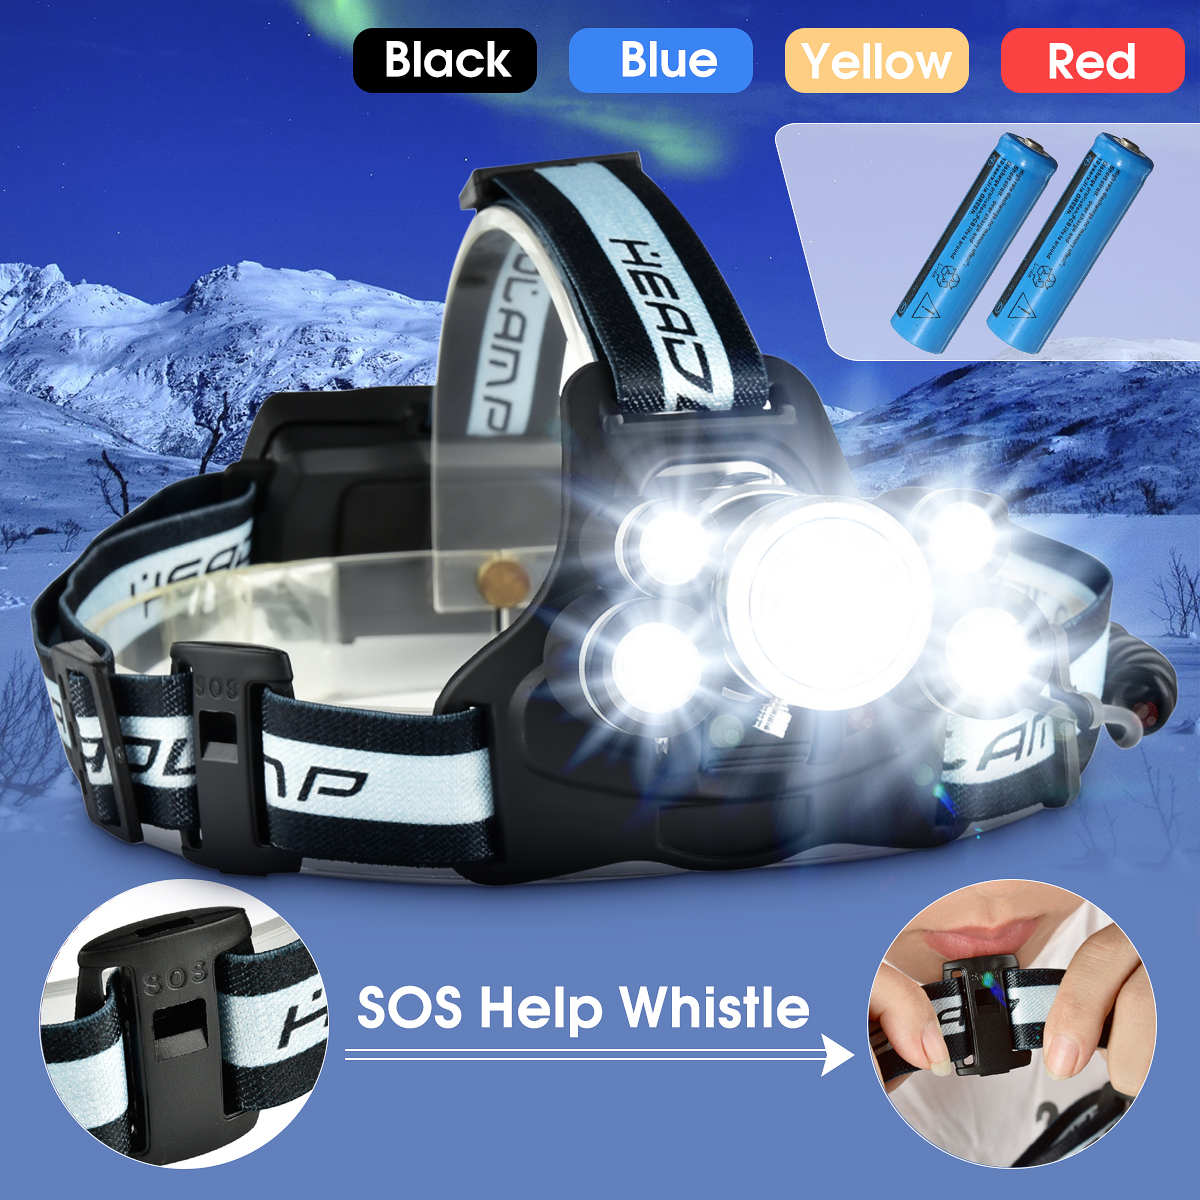 5000Lumens USB Rechargeable Headlight Headlight 5x T6 LED Head Torch 5 Modes with SOS Help Whistle + 18650 Battery for Night Light Emergency Light